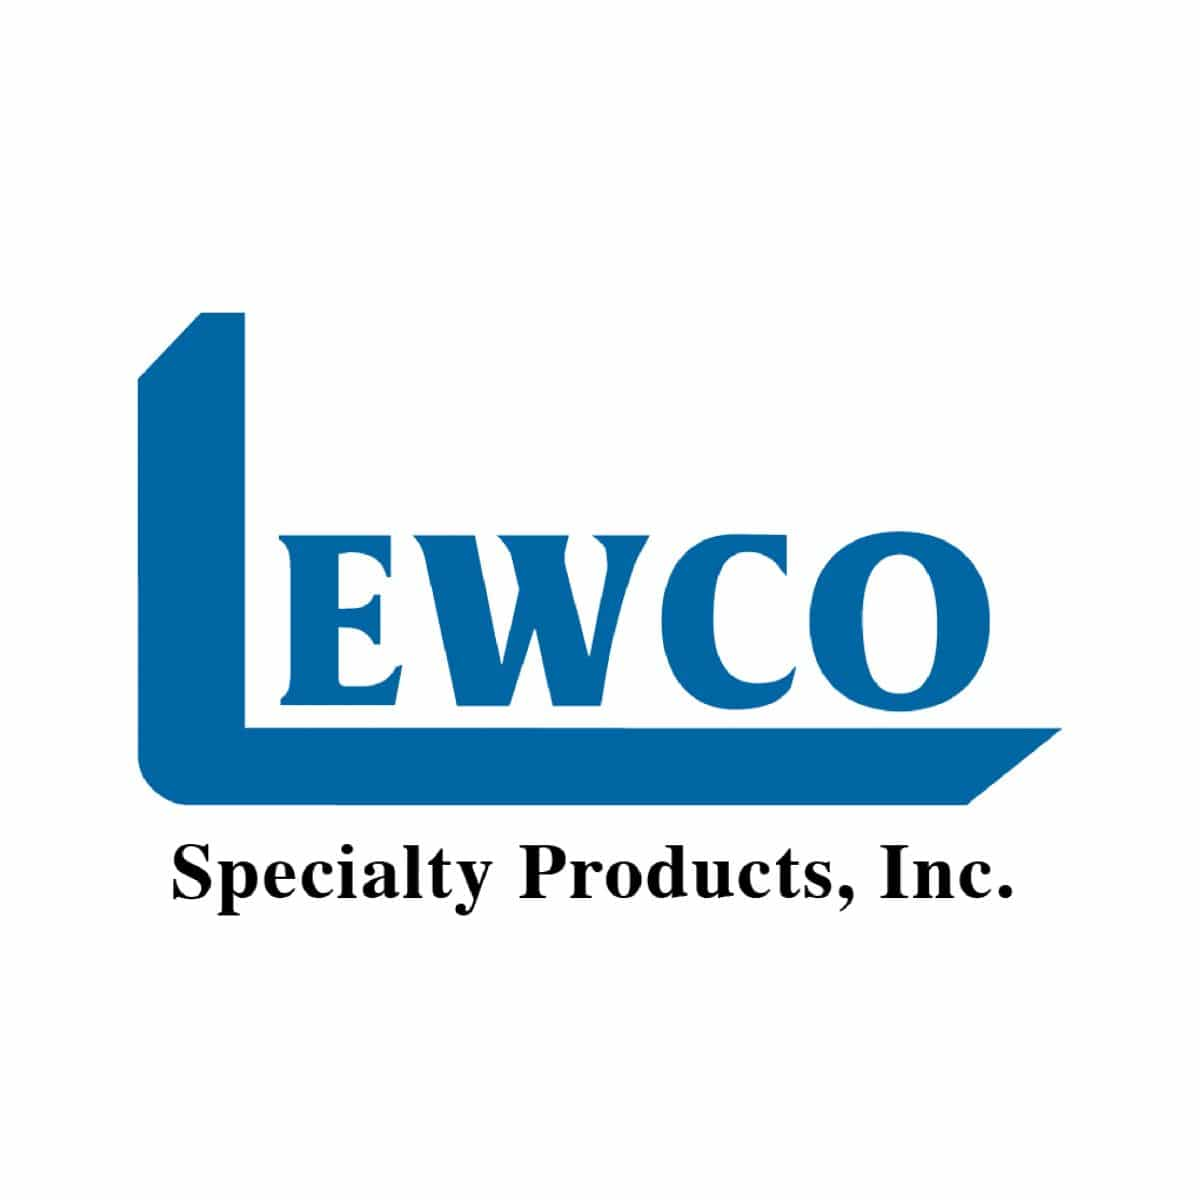 Lewco Specialty Products, Inc